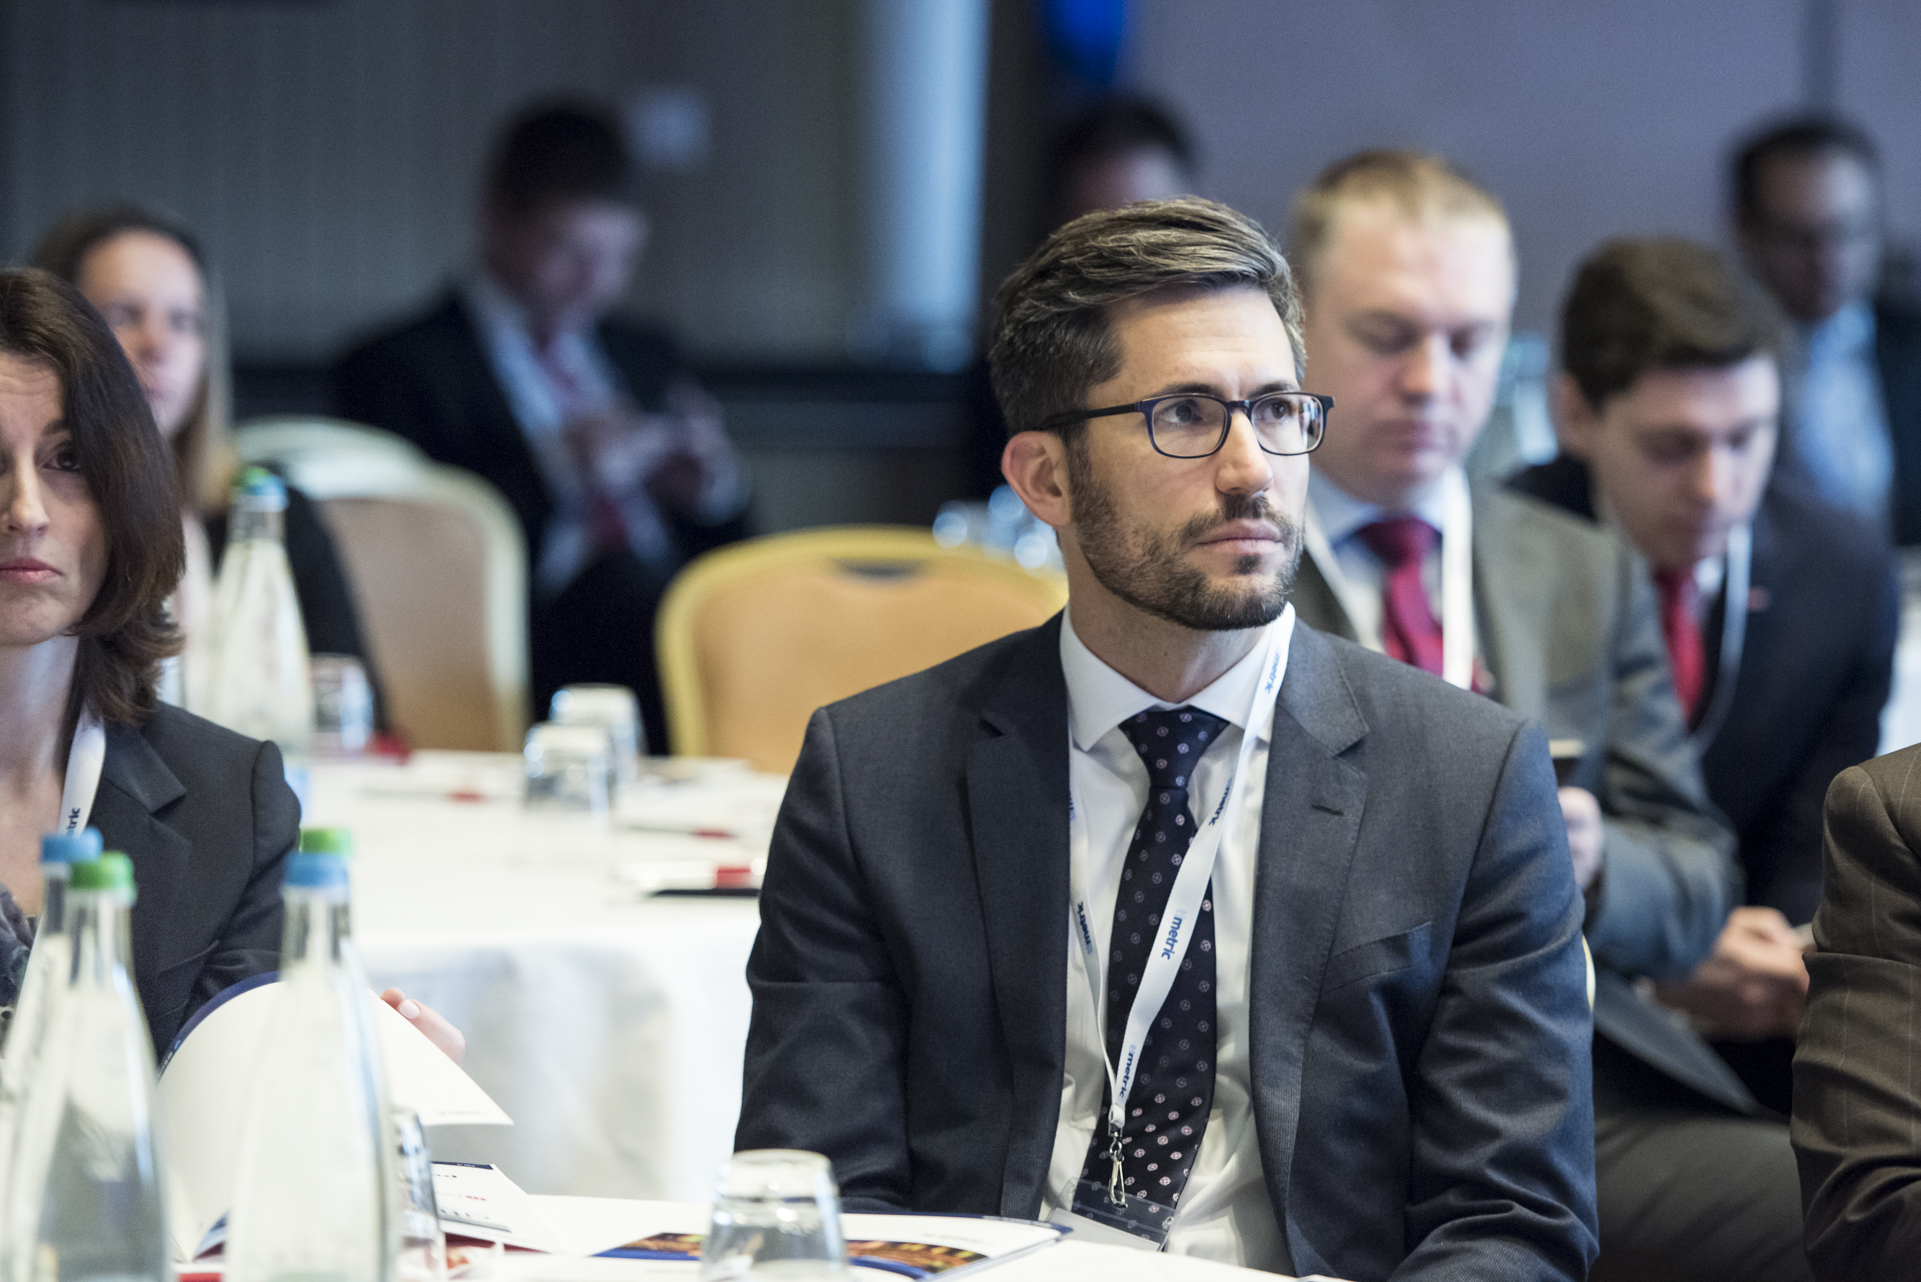 Private Banking Switzerland Conference_Awards 2016_0092.jpg